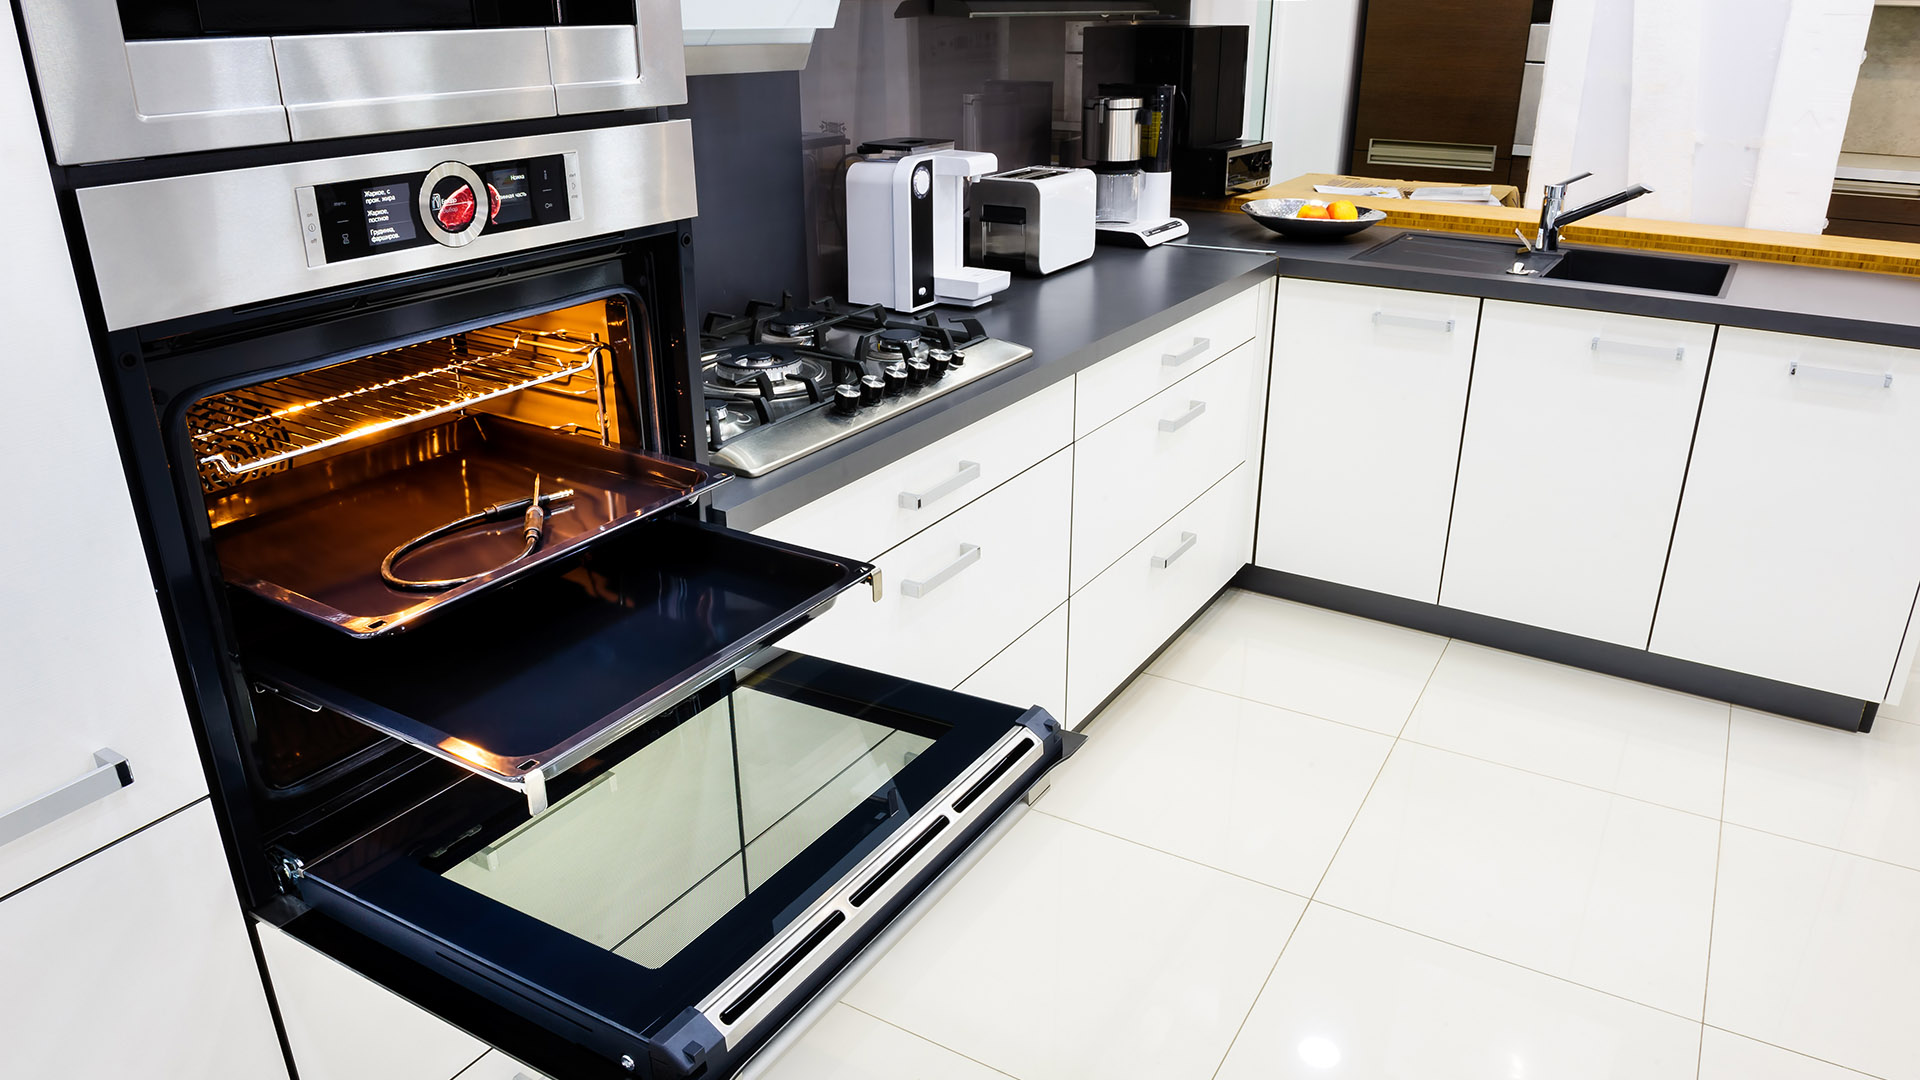 Diamond Oven Cleaning Oven Cleaning Process